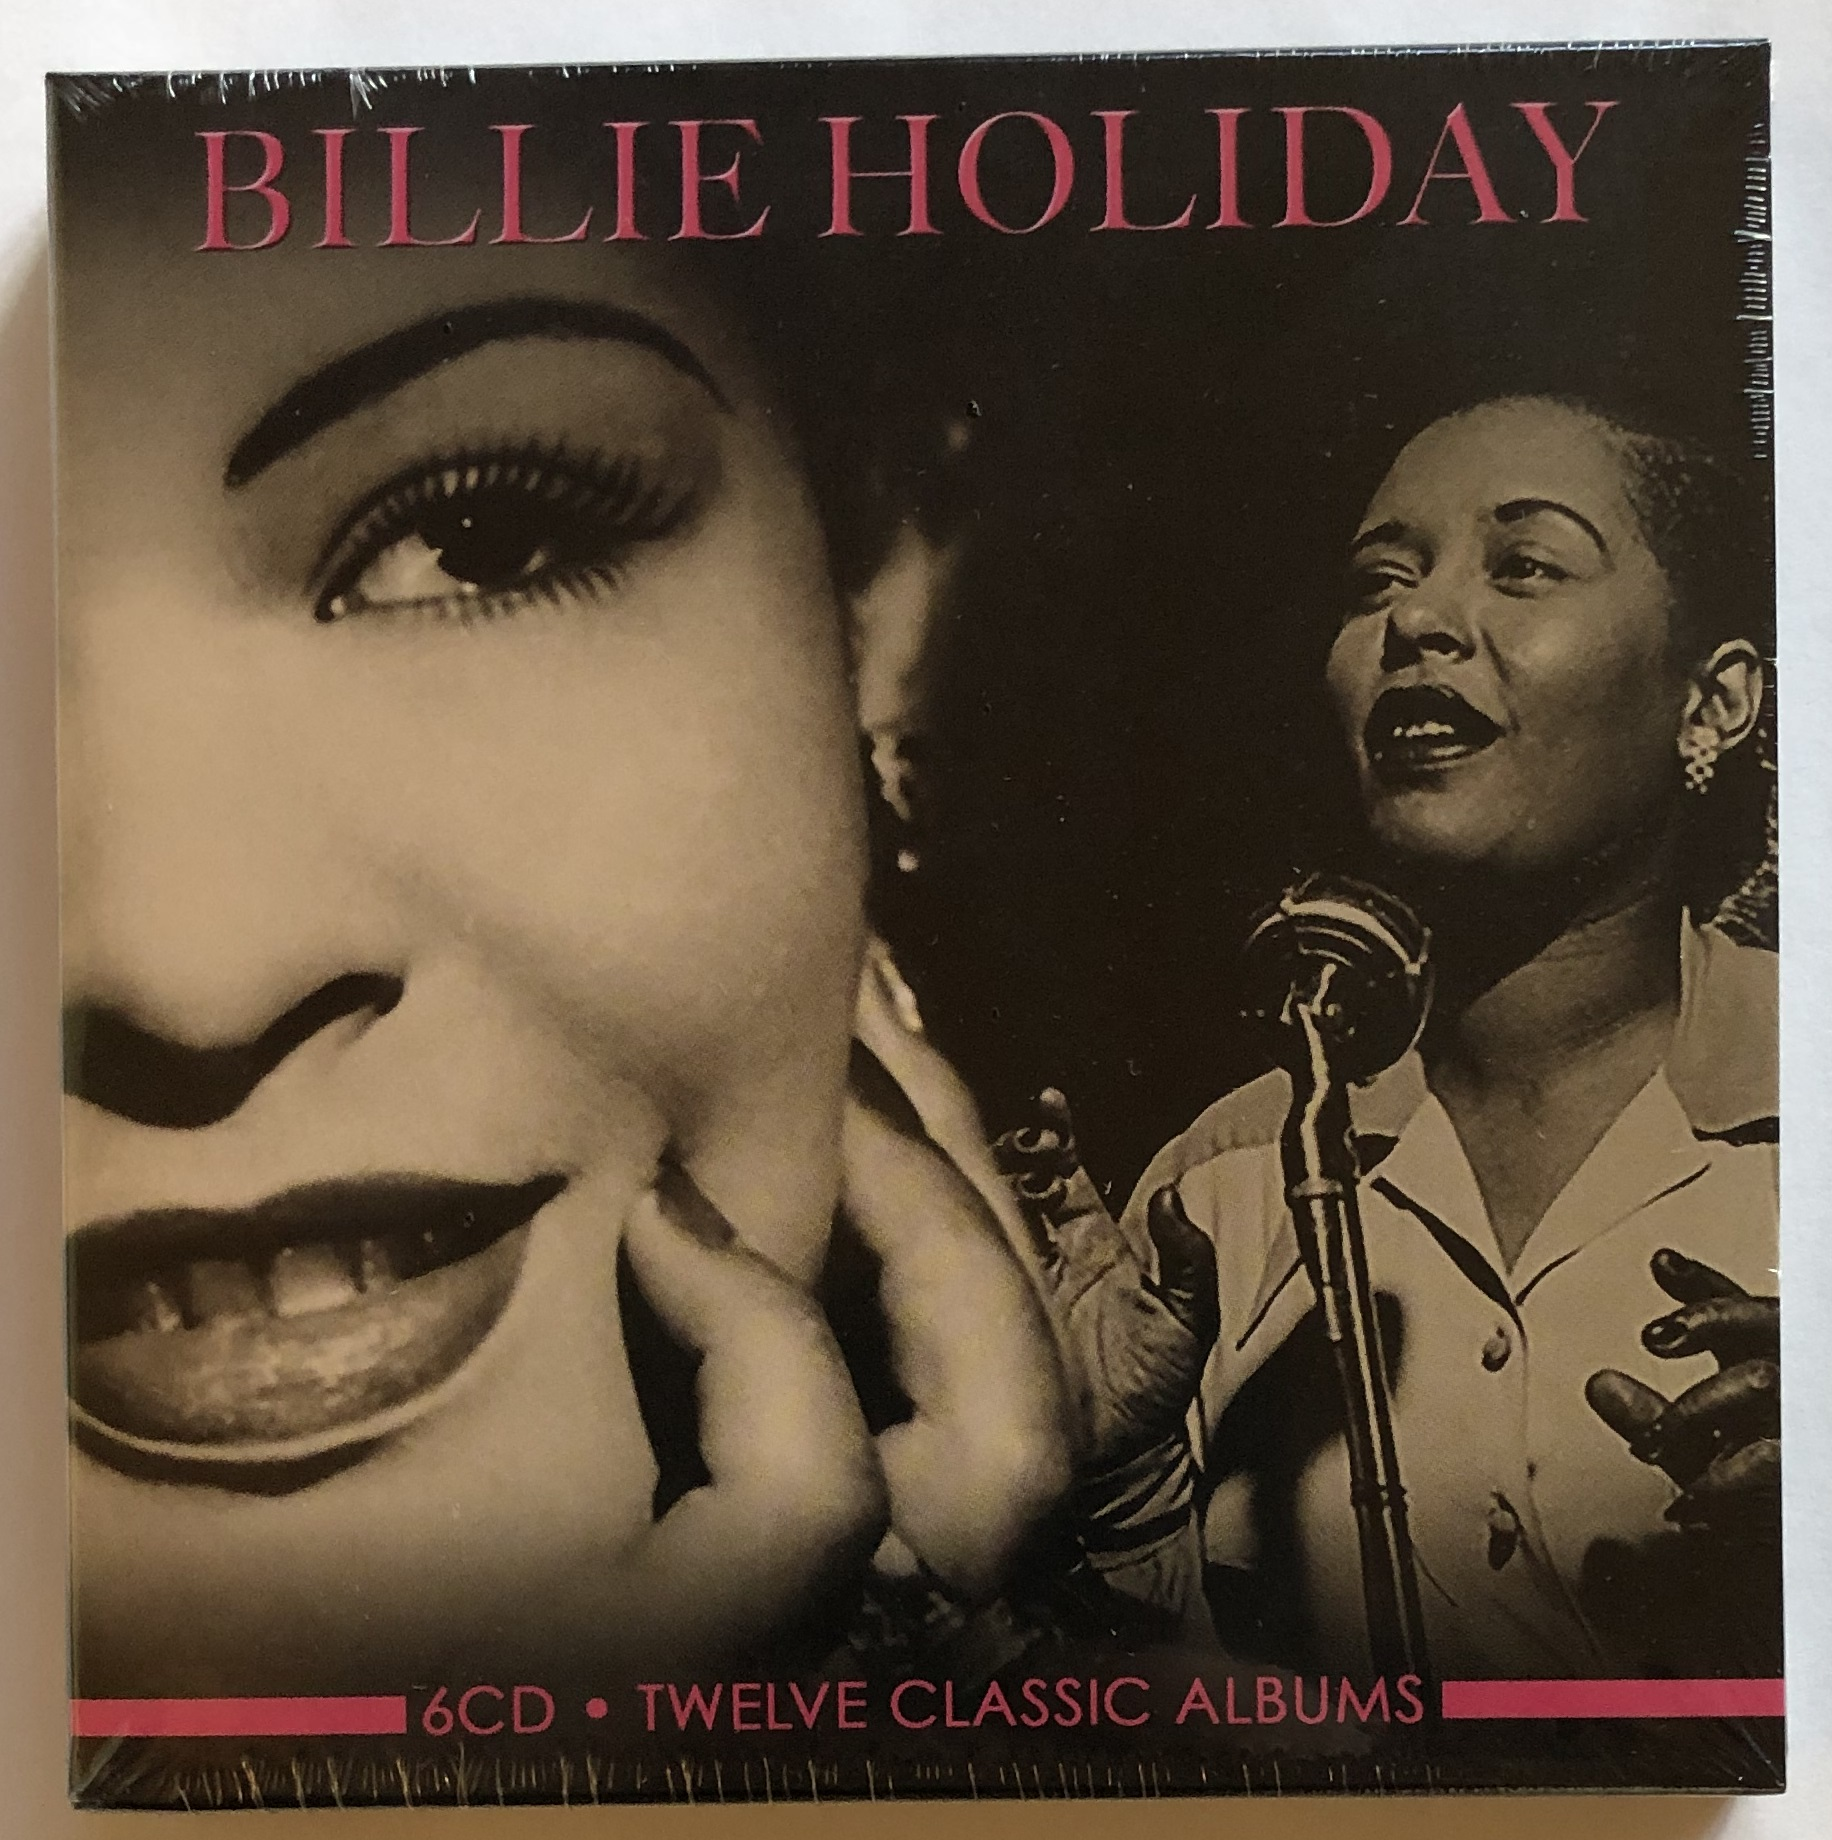 Billie Holiday - Twelve Classic Albums